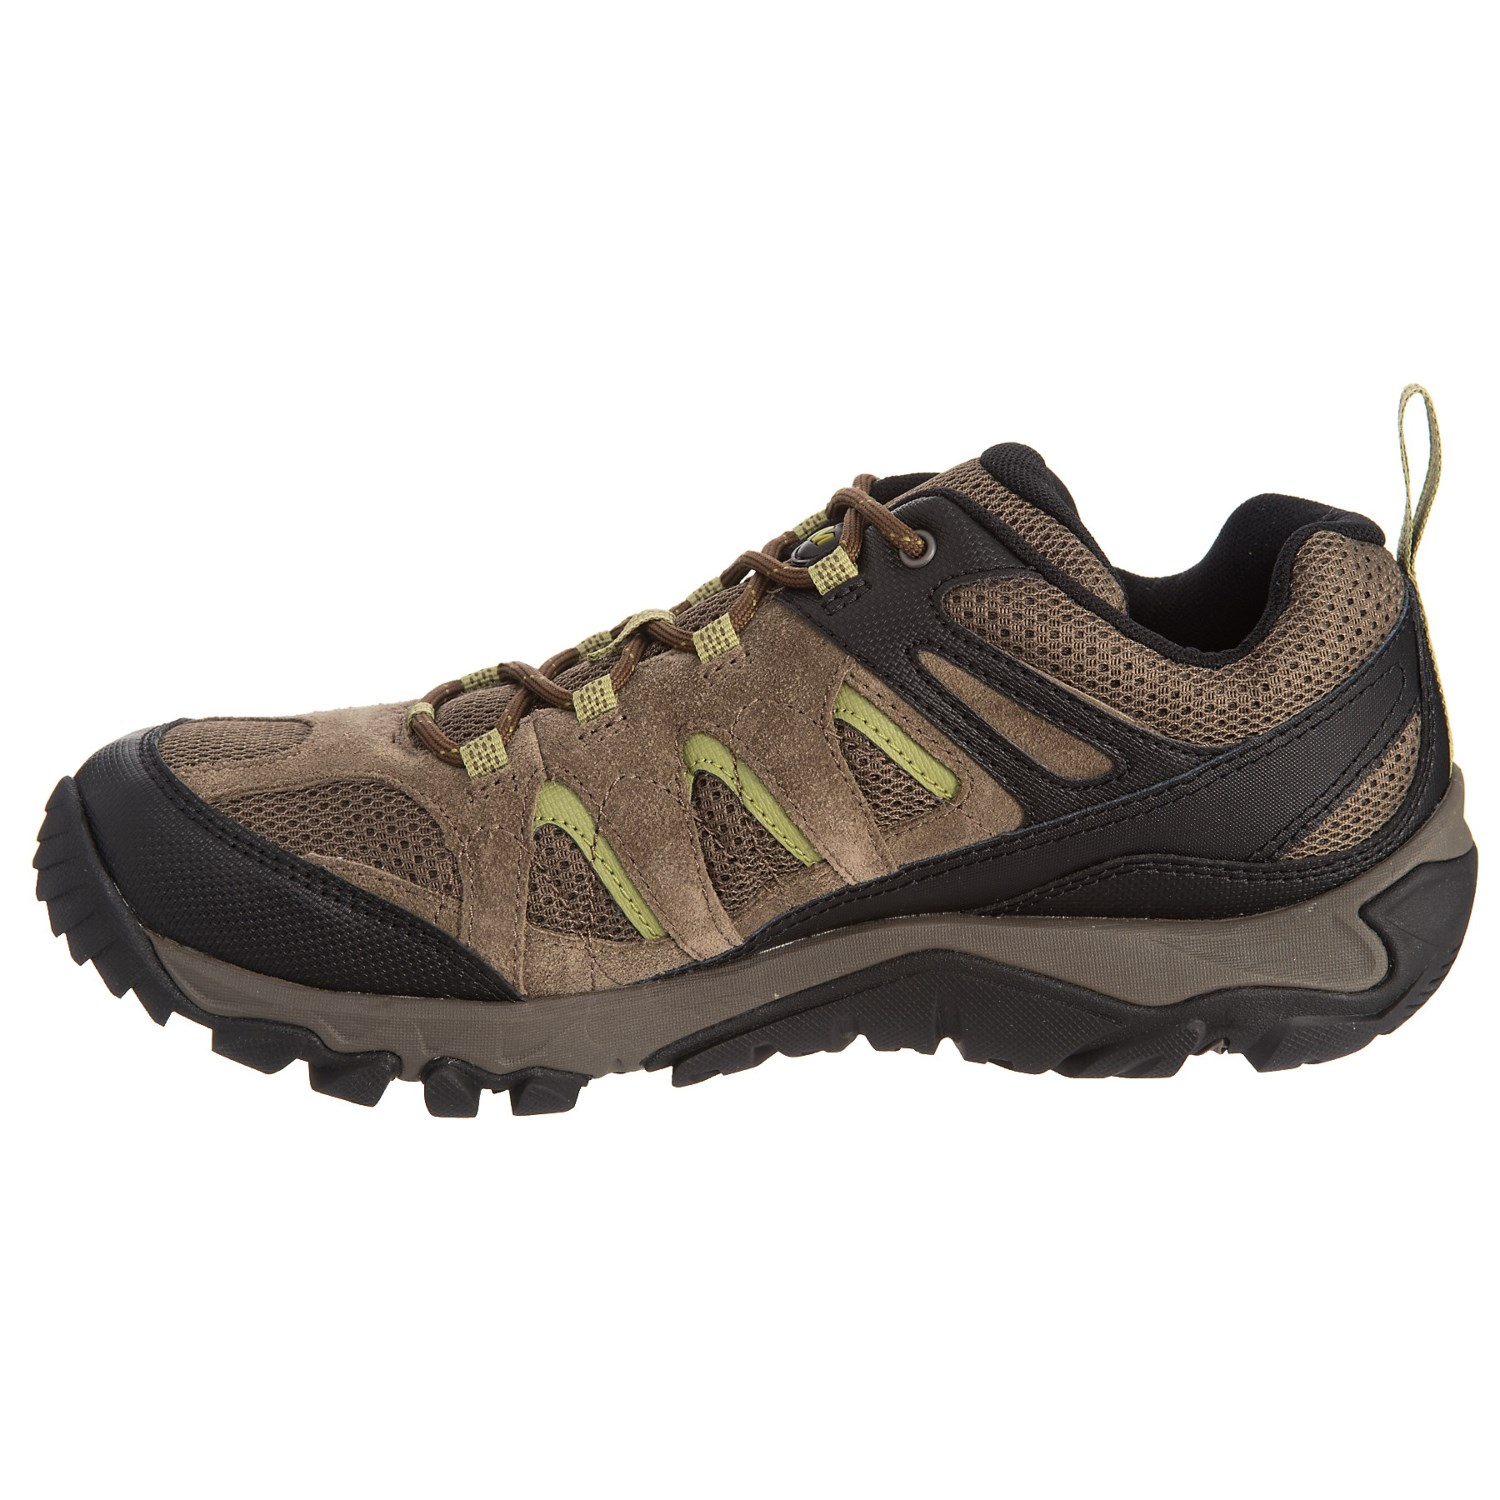 0e5f2172cd8 Merrell Outmost Vent Hiking Shoes (For Men)